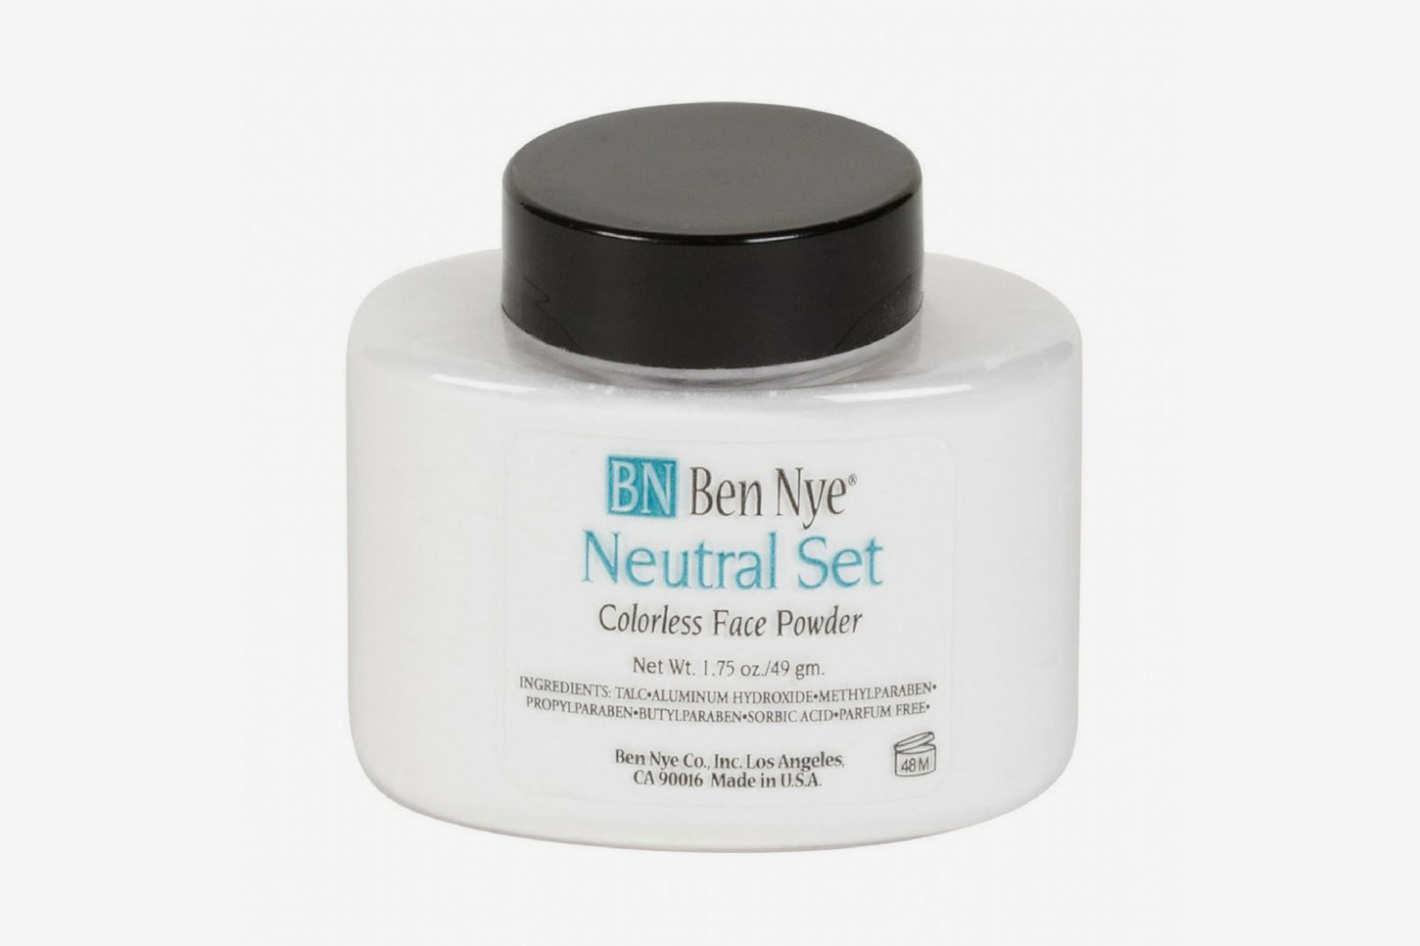 Ben Nye Neutral Set Colorless Powder